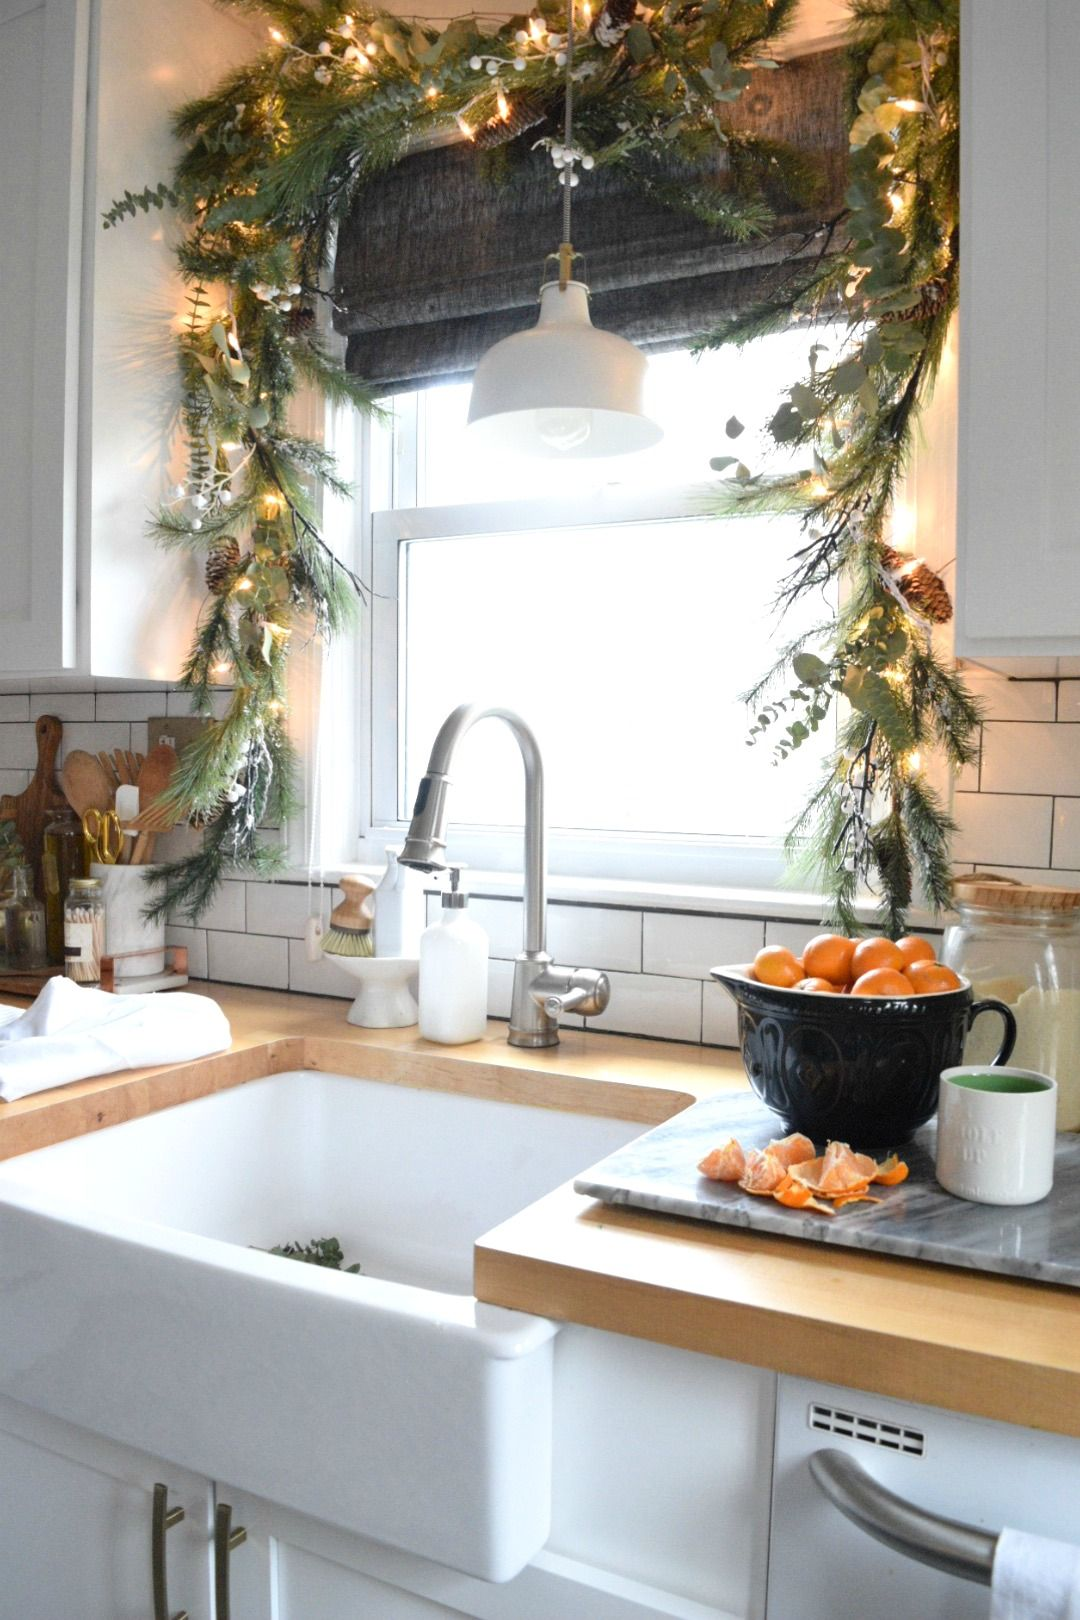 Small window decor  christmas in our small kitchen started with christmas garland